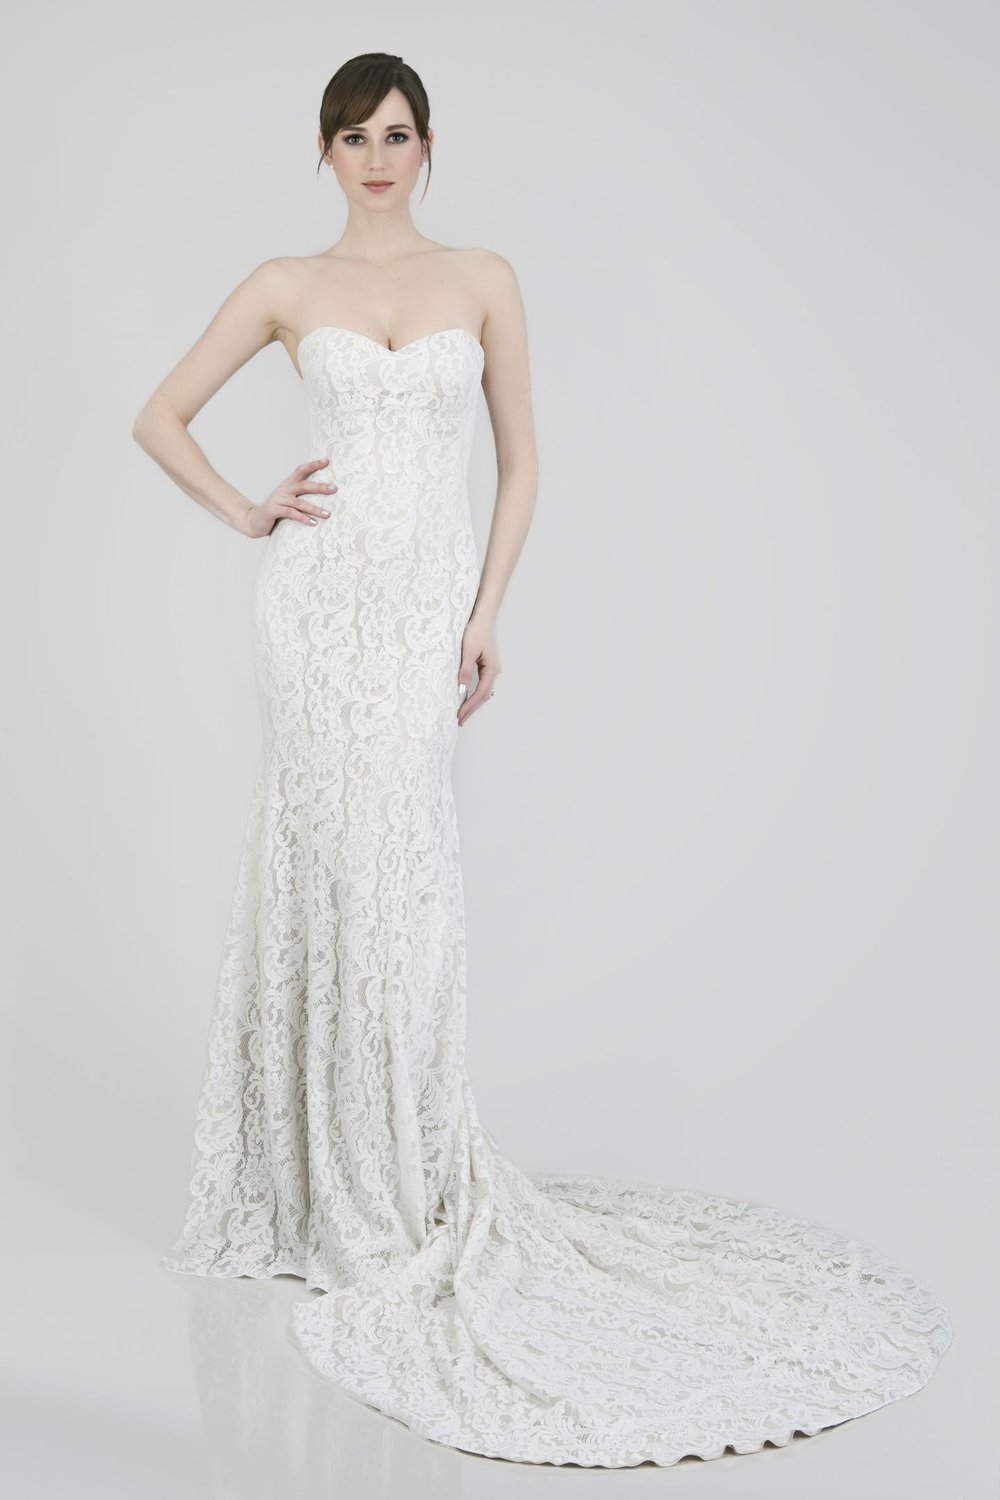 Lace wedding dress by Theia Couture Orlando, FL